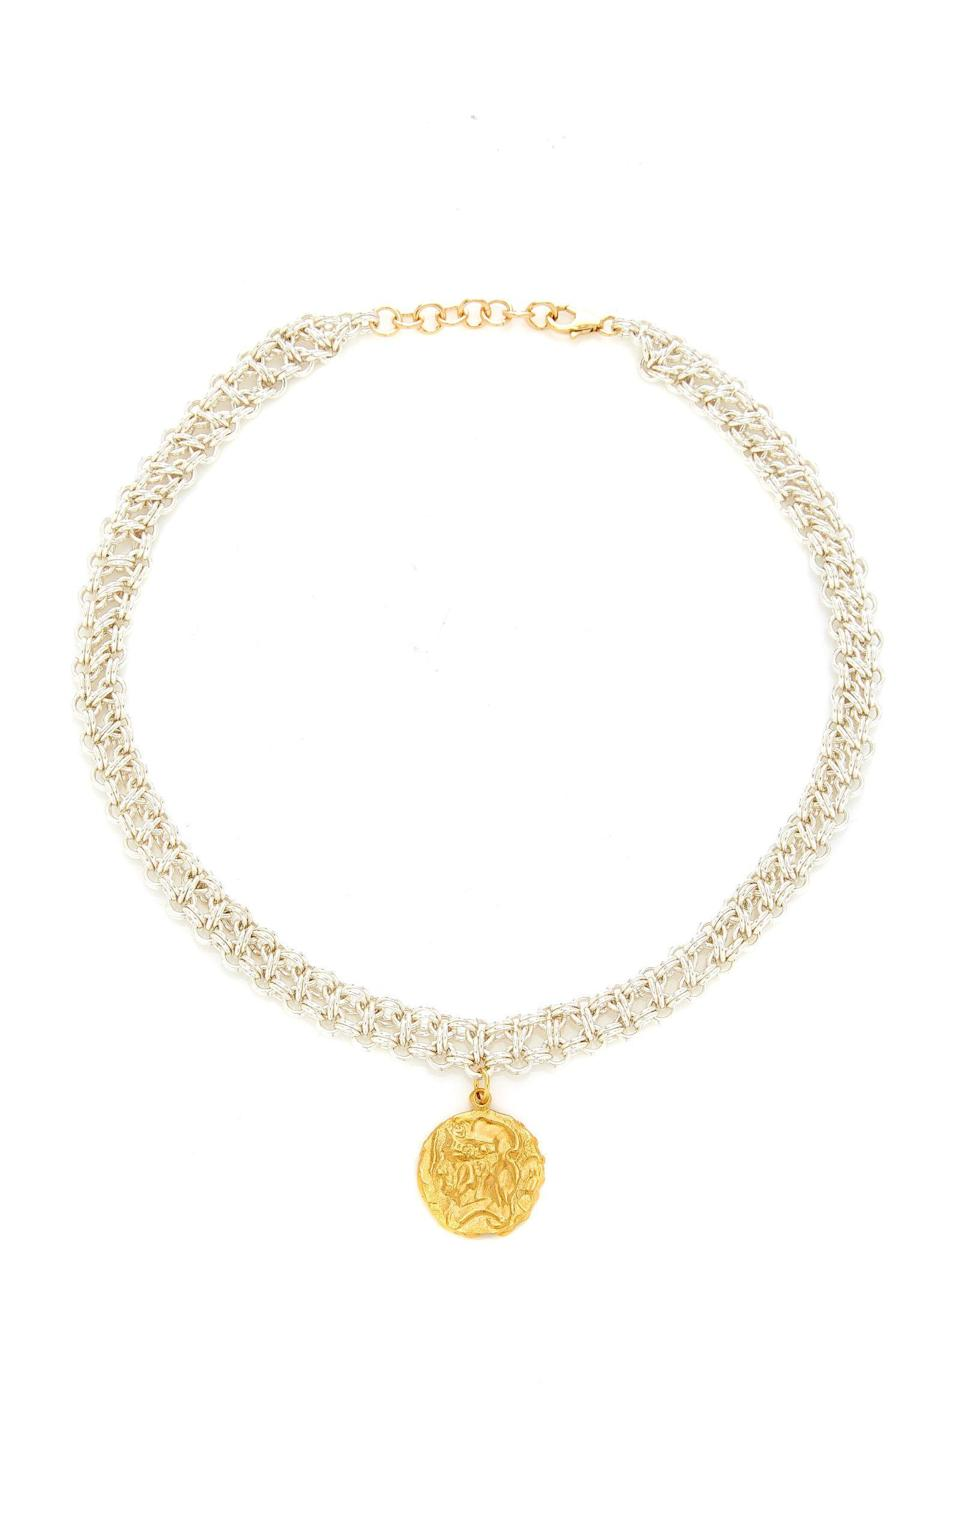 """<p><strong>Alighieri</strong></p><p>modaoperandi.com</p><p><strong>$600.00</strong></p><p><a href=""""https://go.redirectingat.com?id=74968X1596630&url=https%3A%2F%2Fwww.modaoperandi.com%2Falighieri-ss20%2Fthe-woven-tapestry-amulet-24k-gold-plated-bronze-necklace&sref=https%3A%2F%2Fwww.townandcountrymag.com%2Fstyle%2Ffashion-trends%2Fg32701003%2Feco-friendly-gifts%2F"""" rel=""""nofollow noopener"""" target=""""_blank"""" data-ylk=""""slk:Shop Now"""" class=""""link rapid-noclick-resp"""">Shop Now</a></p><p>Alighieri designer Rosh Mahtani won the Queen Elizabeth II Award for British Design earlier this year for her innovative designs—she uses recycled brass and bronze for her modern talisman collectibles—and her commitment to local manufacturers—her jewelry is produced in Hatton Garden, London's historic jewelry quarter. </p>"""